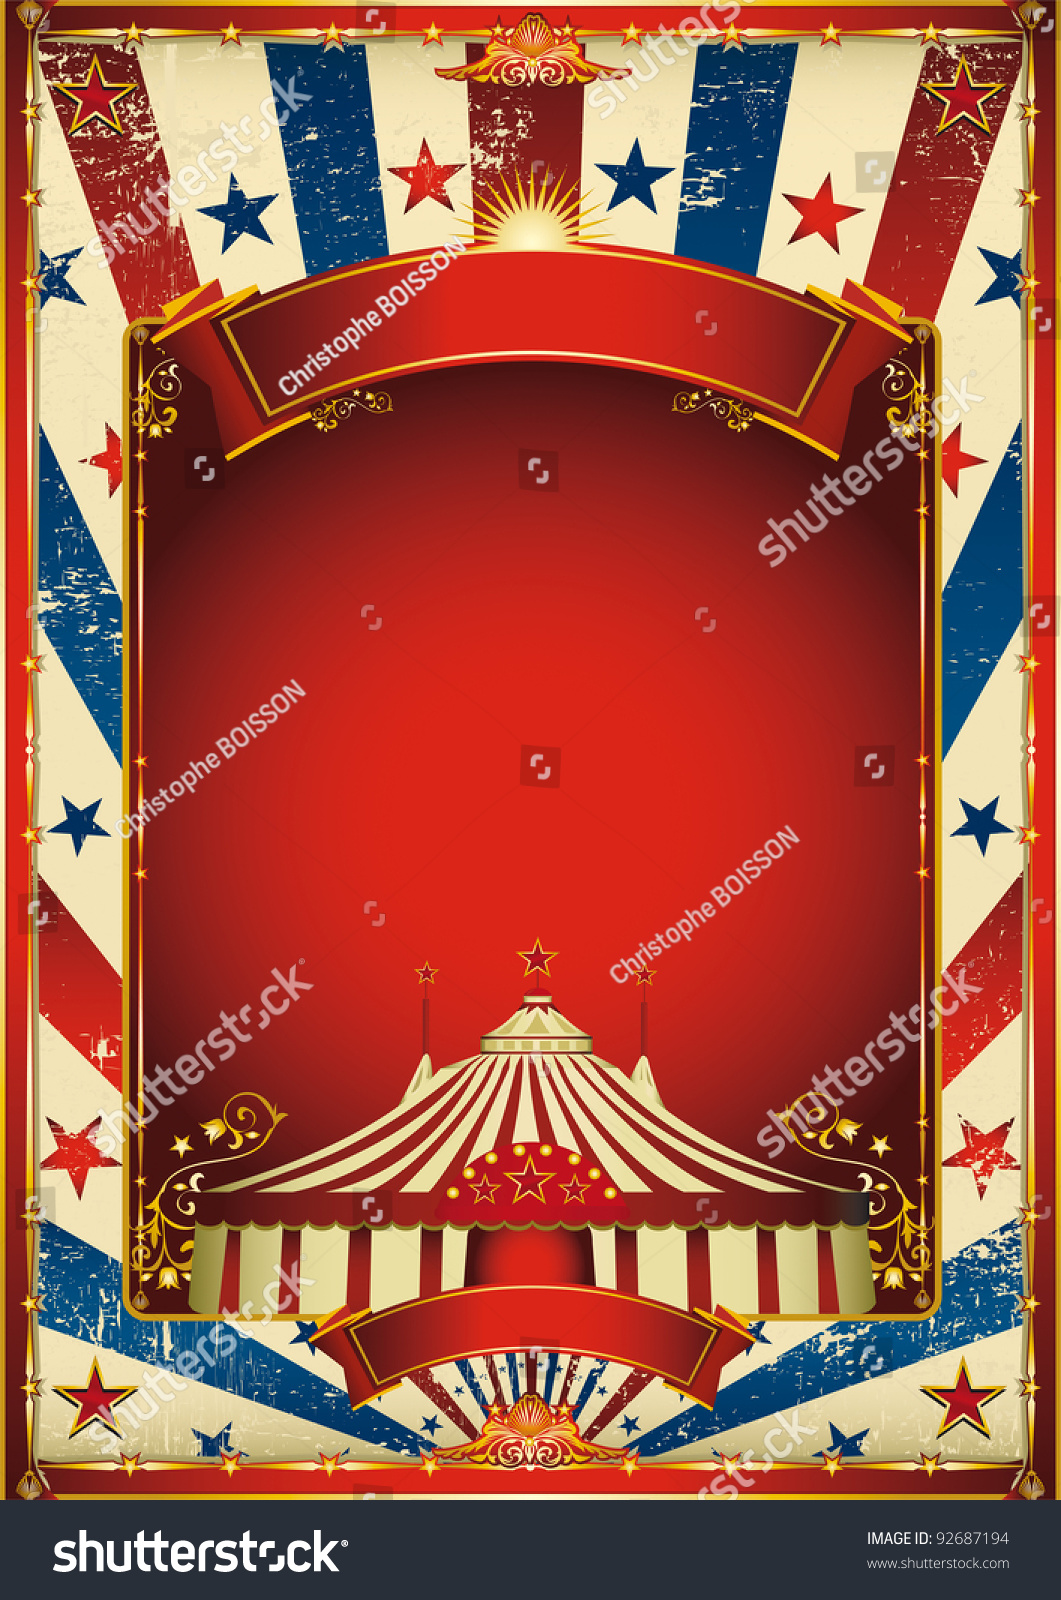 Nice vintage circus background big top stock vector for Circus posters free